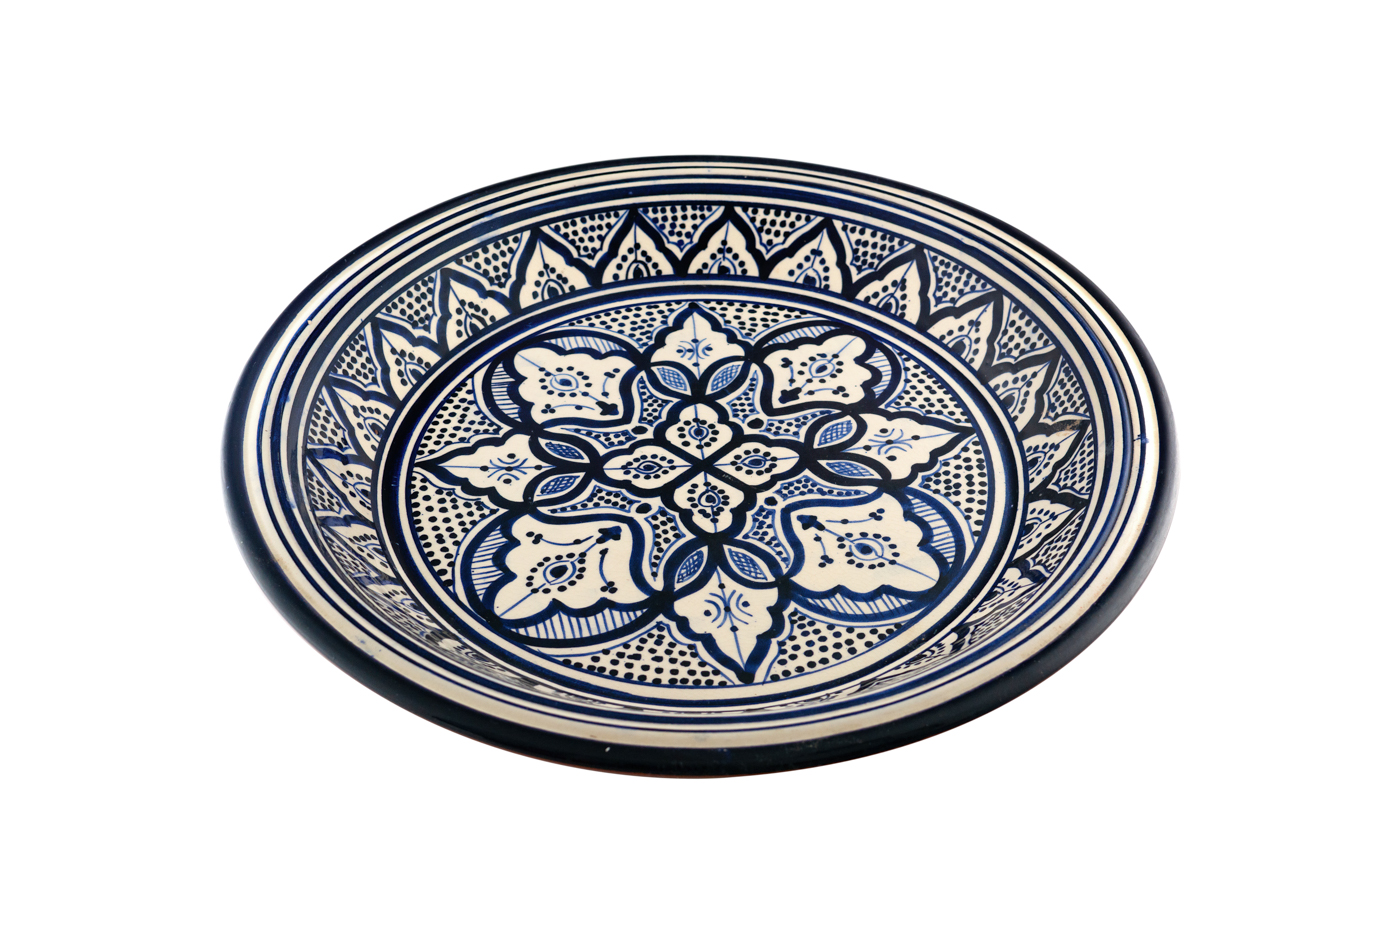 Moroccan ceramic tray painted with floral arabesque designs - White / blue